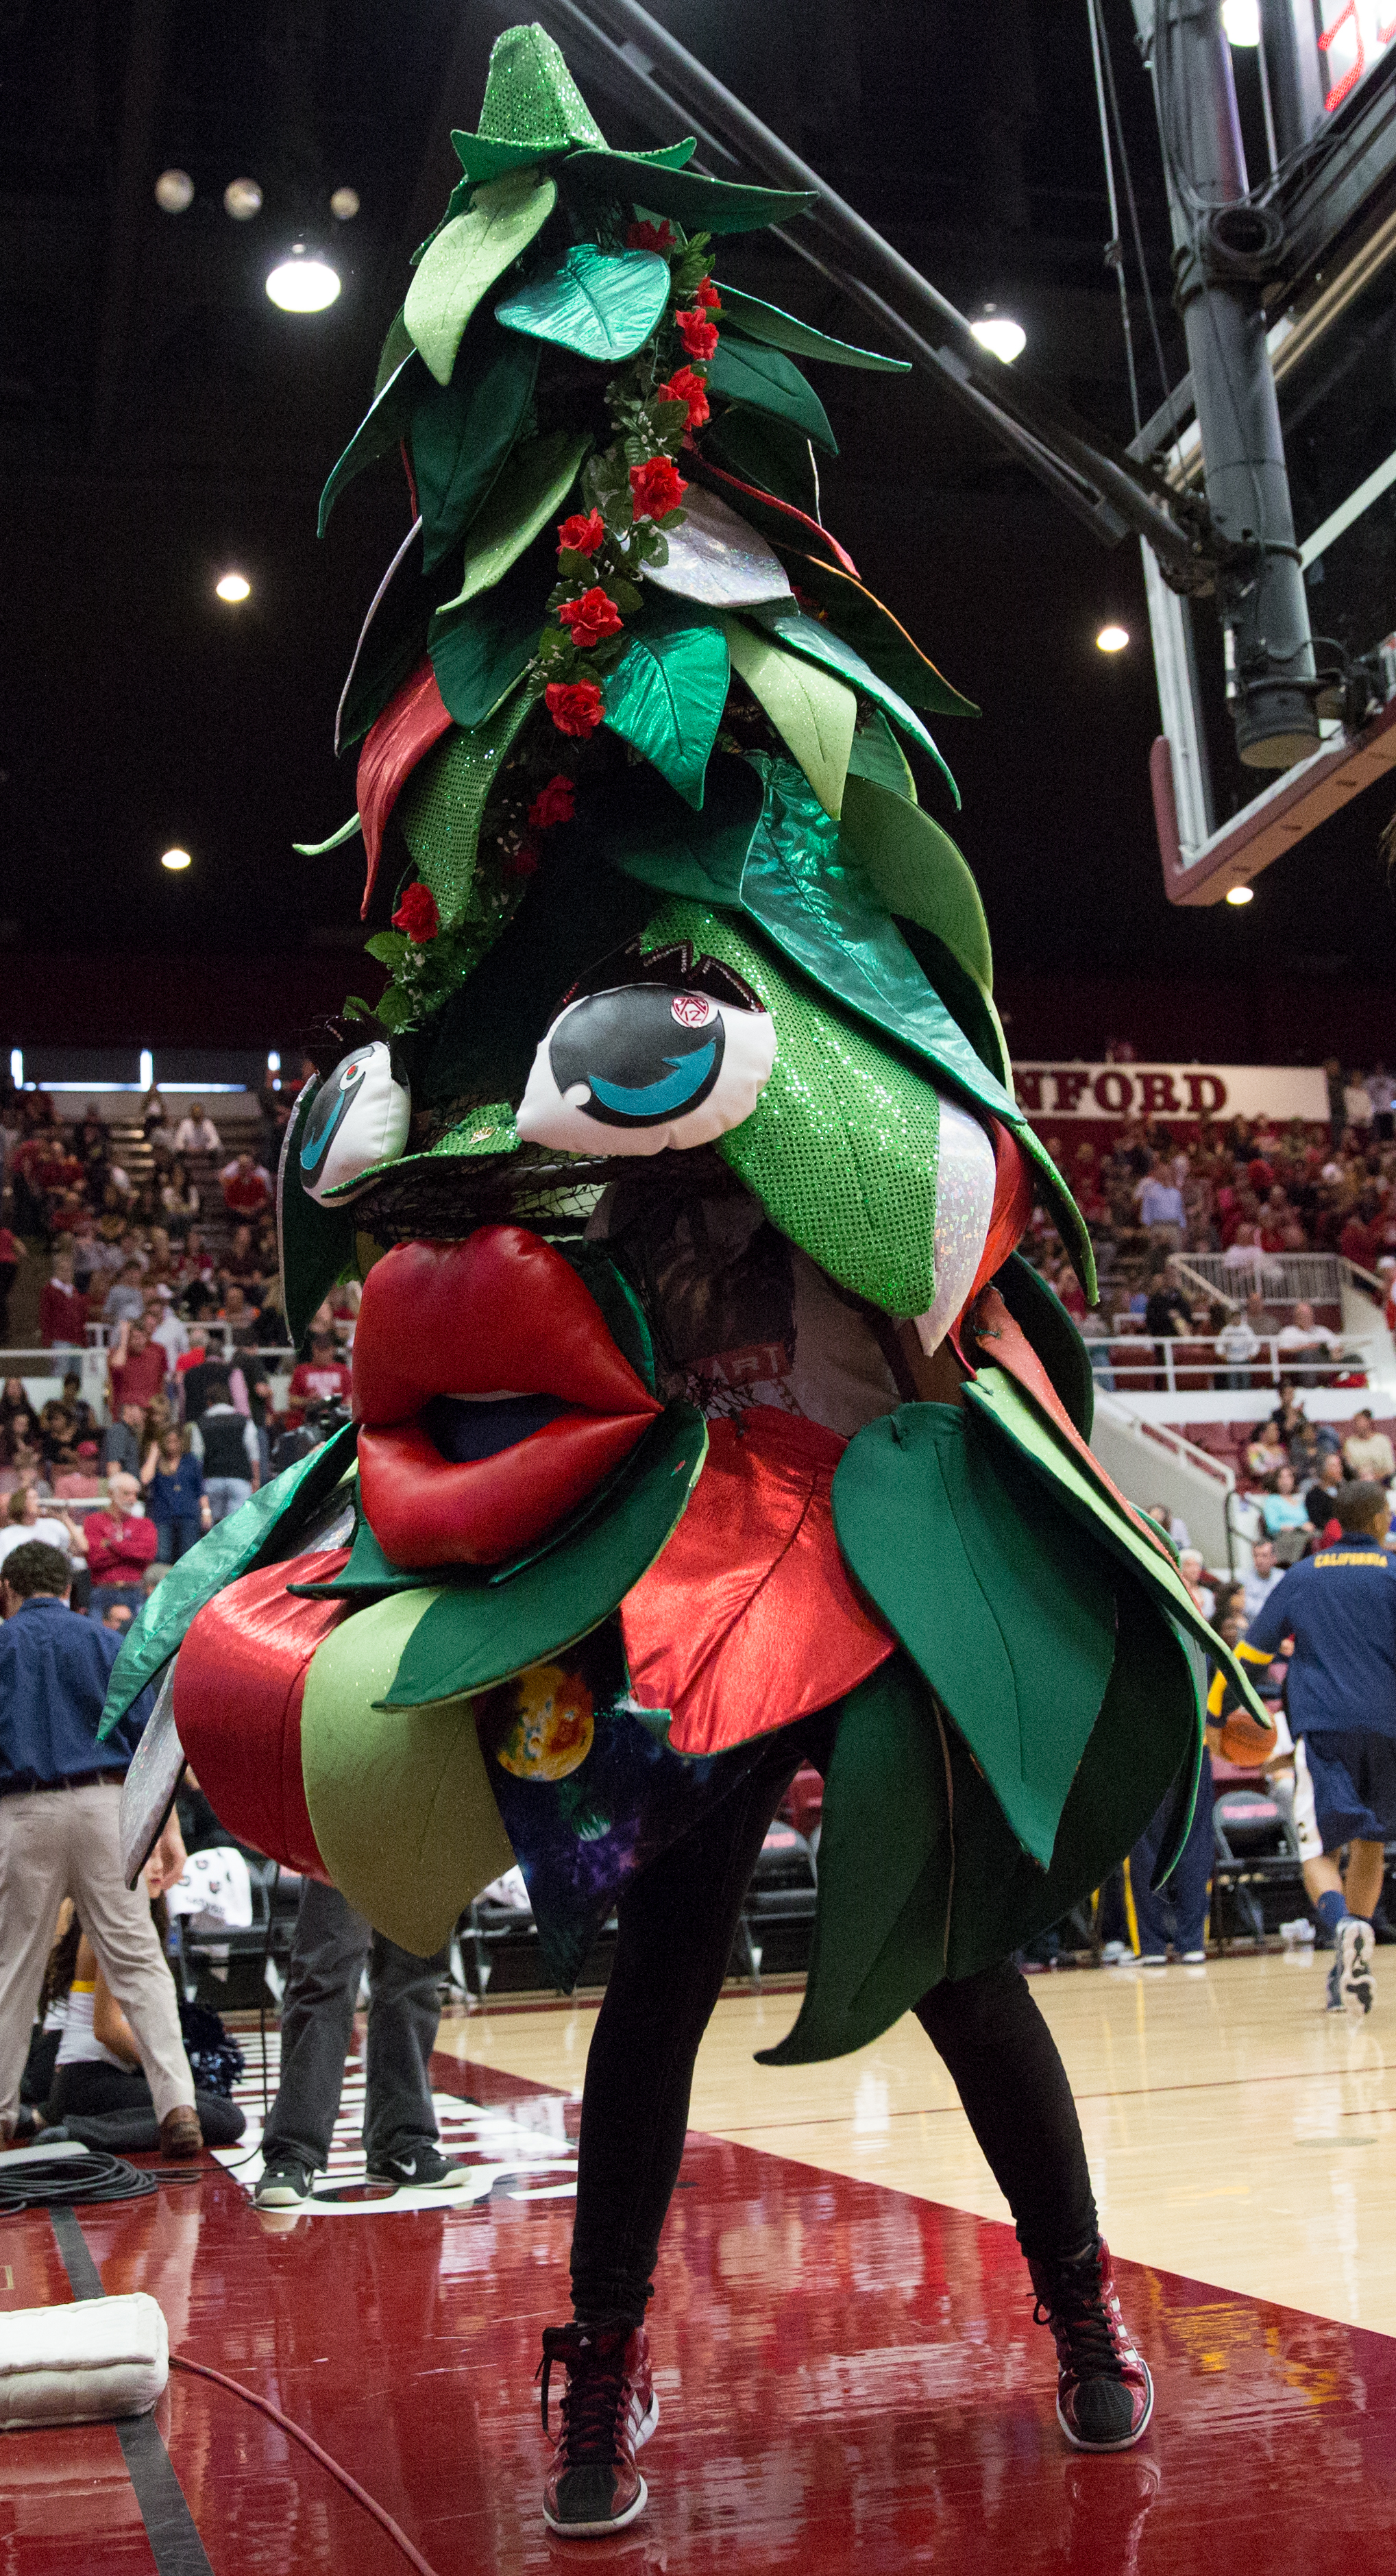 """The origins of Stanford's """"Tree"""" mascot   The Daily ...   2037 x 3758 jpeg 2328kB"""